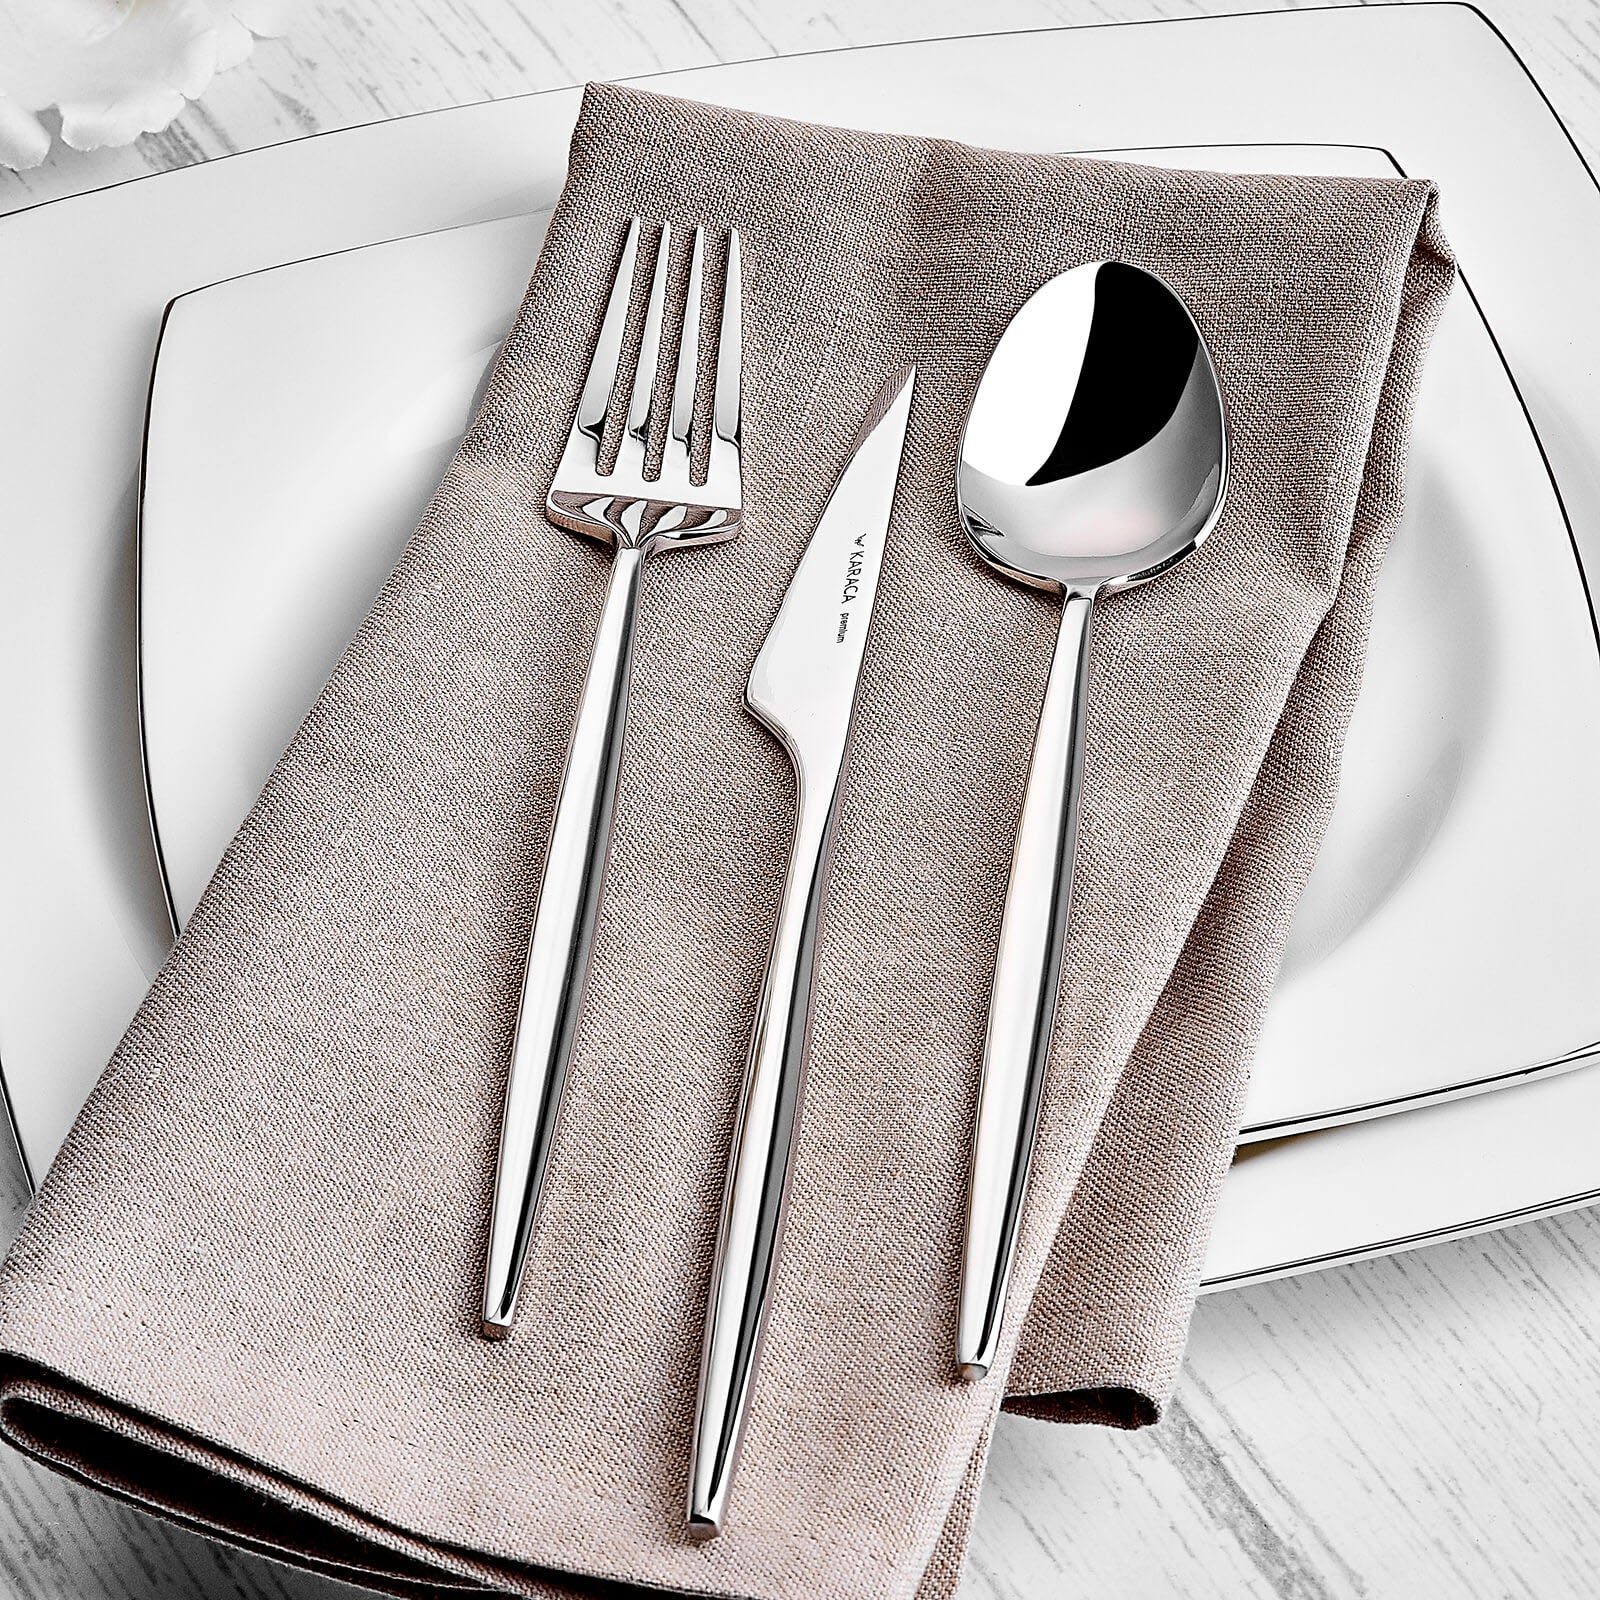 Pre-Order 50 days delivery 84 Pieces Boxed Moongate Cutlery Set 1296 153.02.01.0311